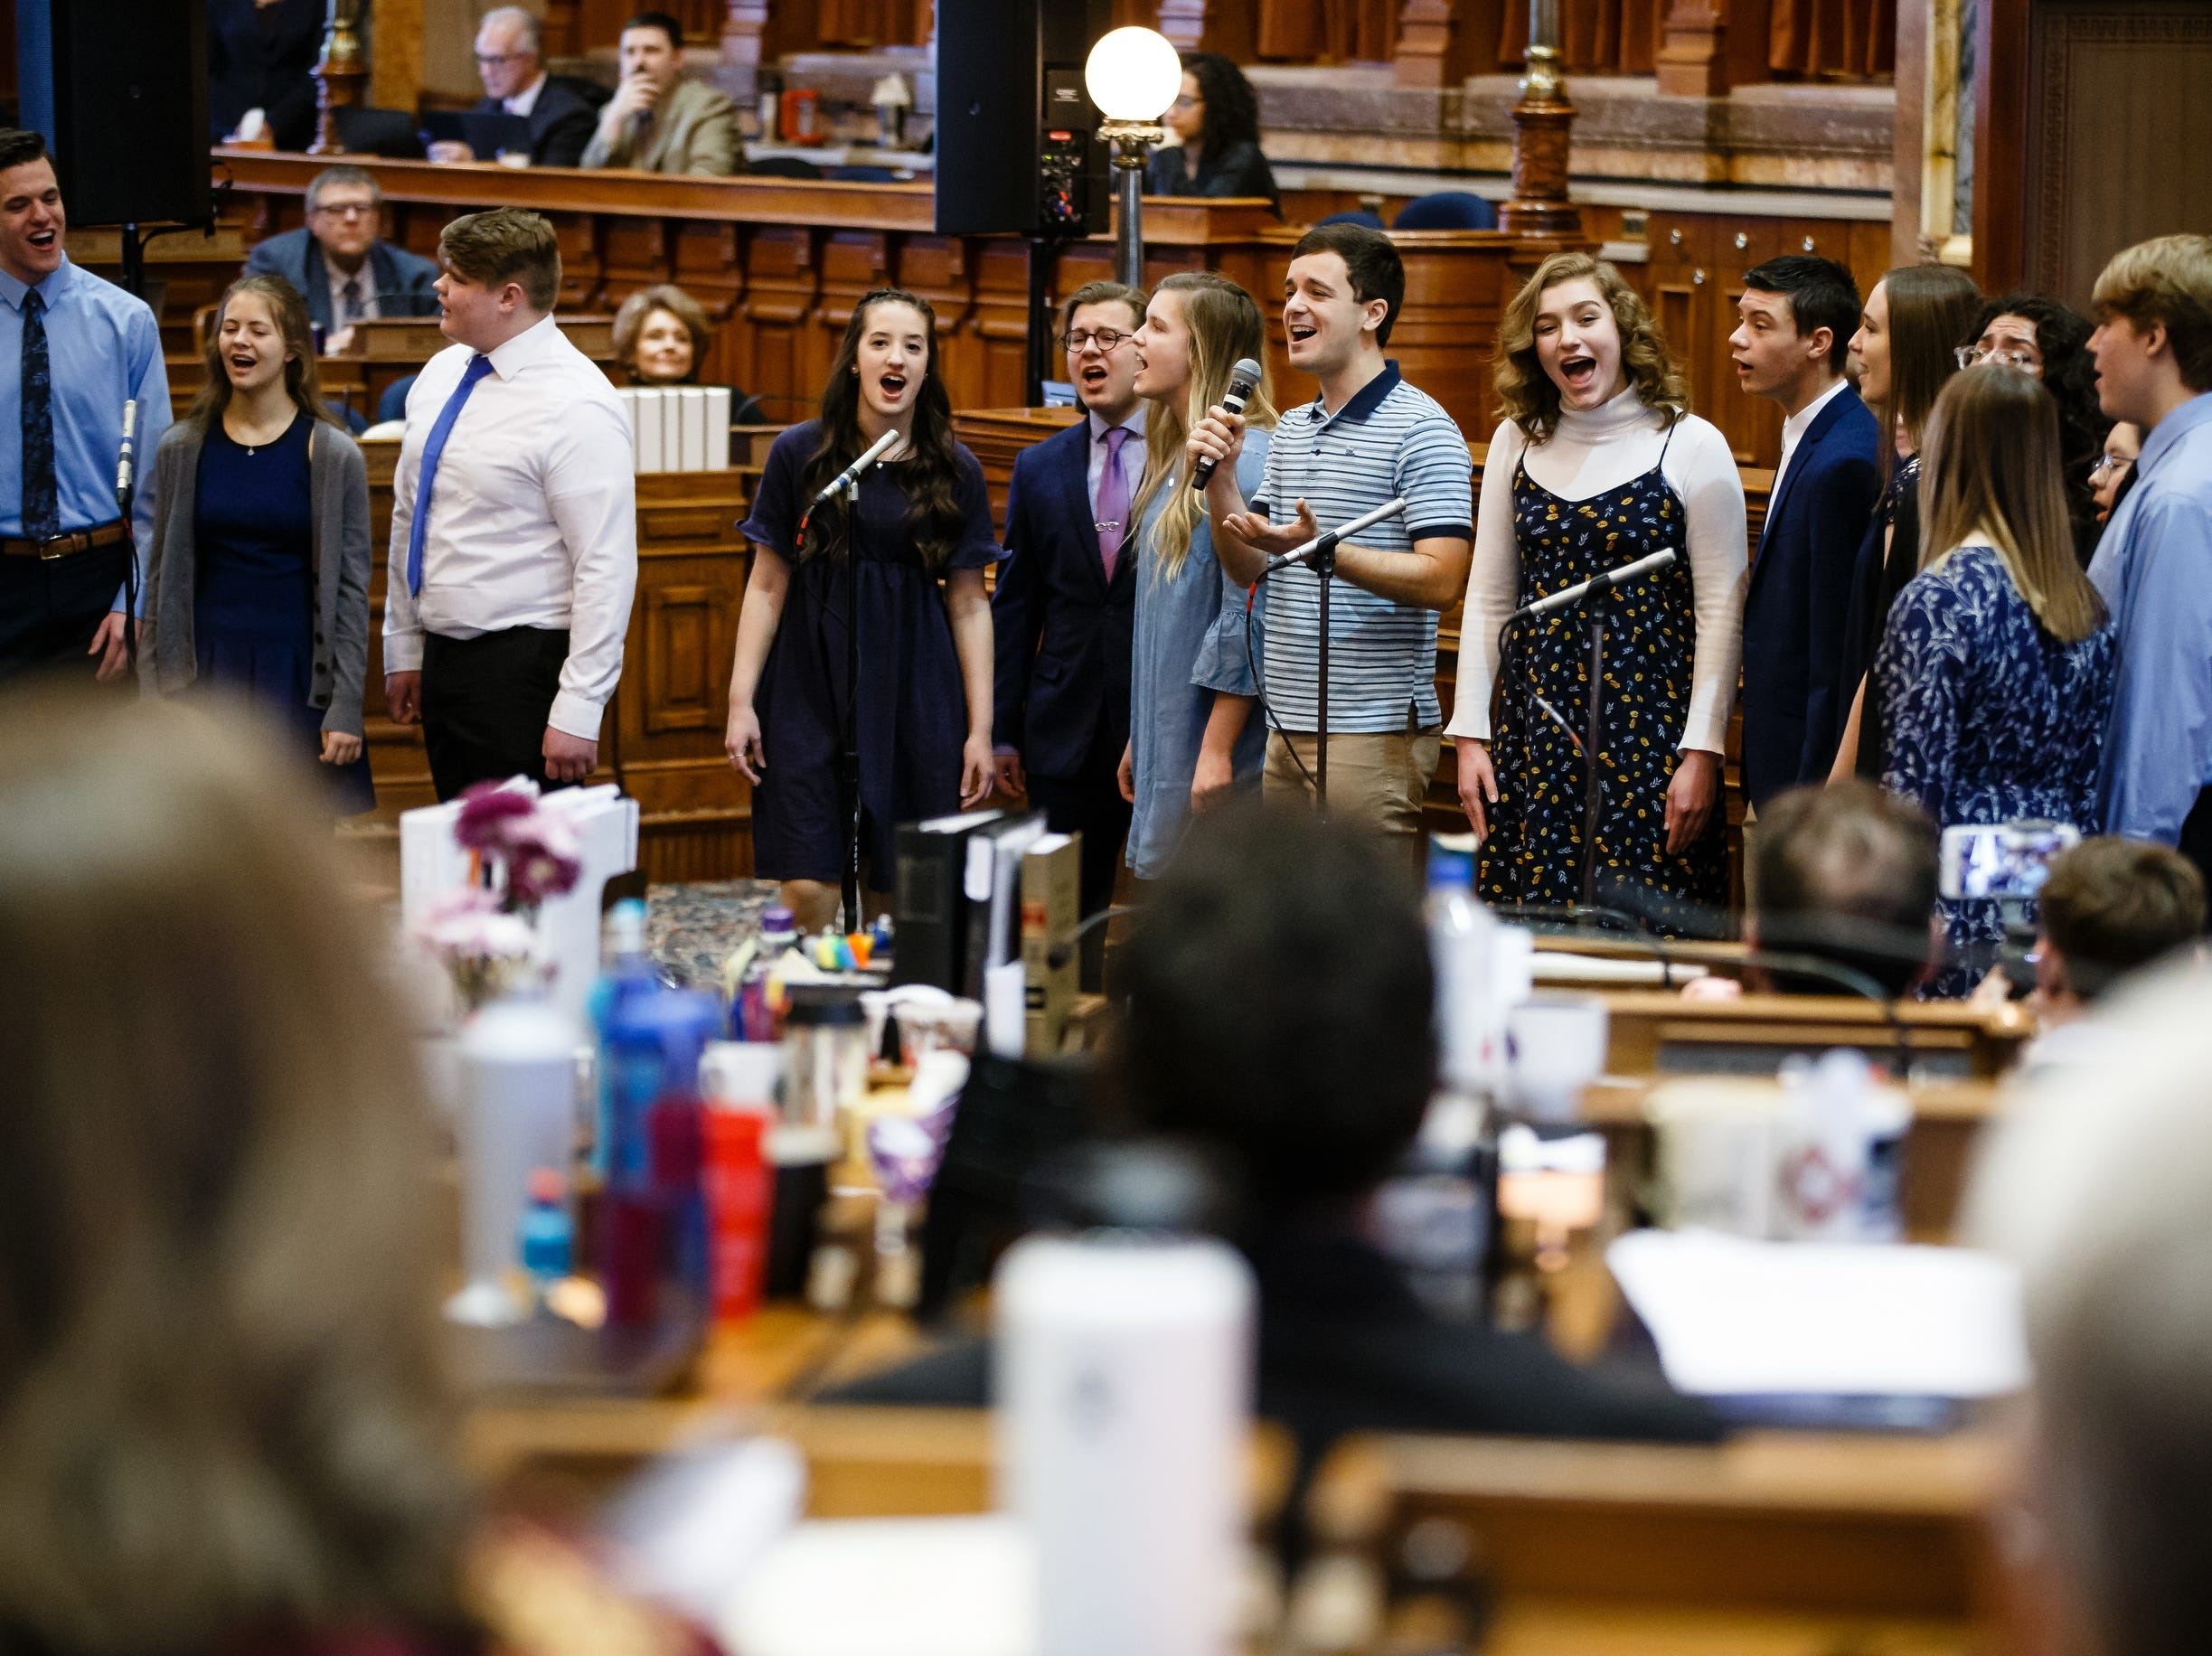 "Actor Stephen Christopher Anthony, center, striped shirt, performs the song ""You Will Be Found"" from the Broadway show Dear Evan Hansen with the Waukee High School Avenue Jazz choir at the Iowa State Capitol on Wednesday, Feb. 6, 2019, in Des Moines."